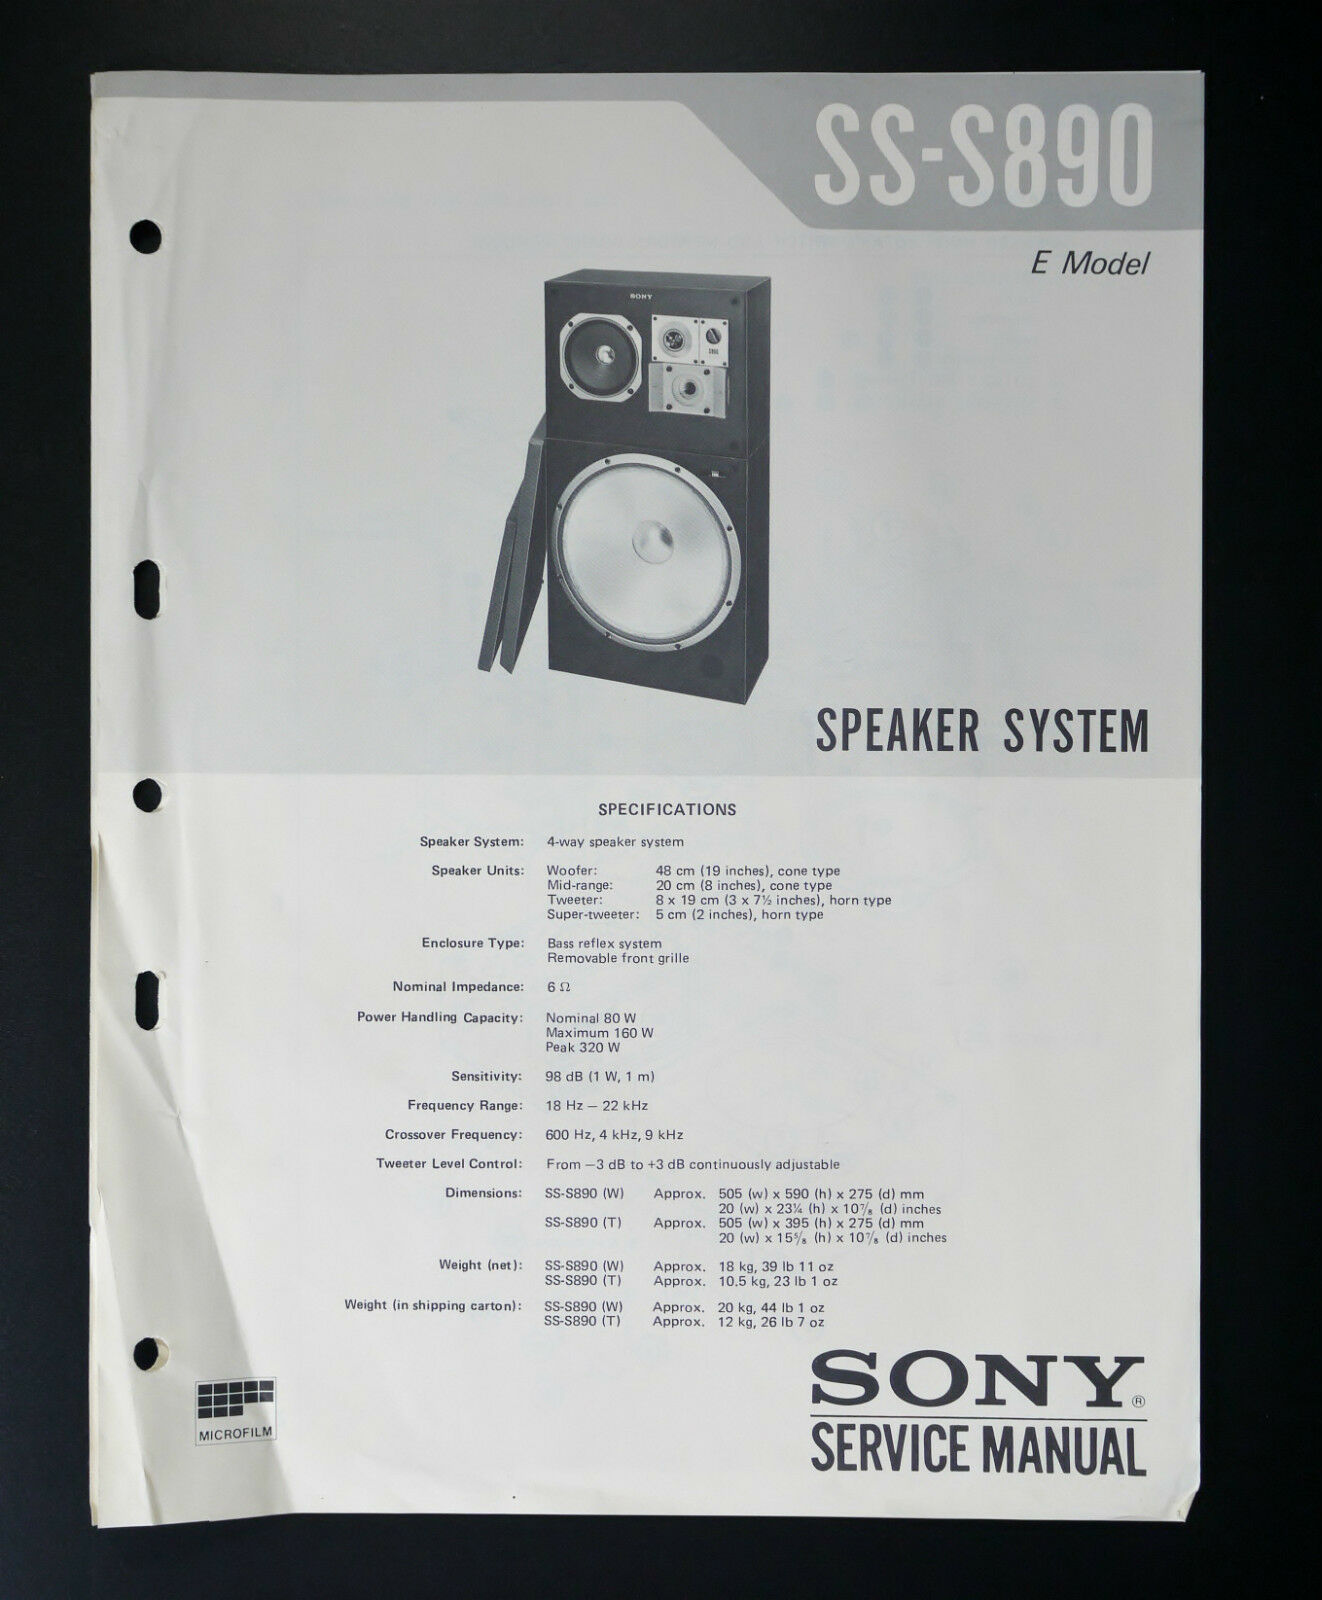 Sony Ss S890 Original Service Manual Wiring Diagram 1 Of See More